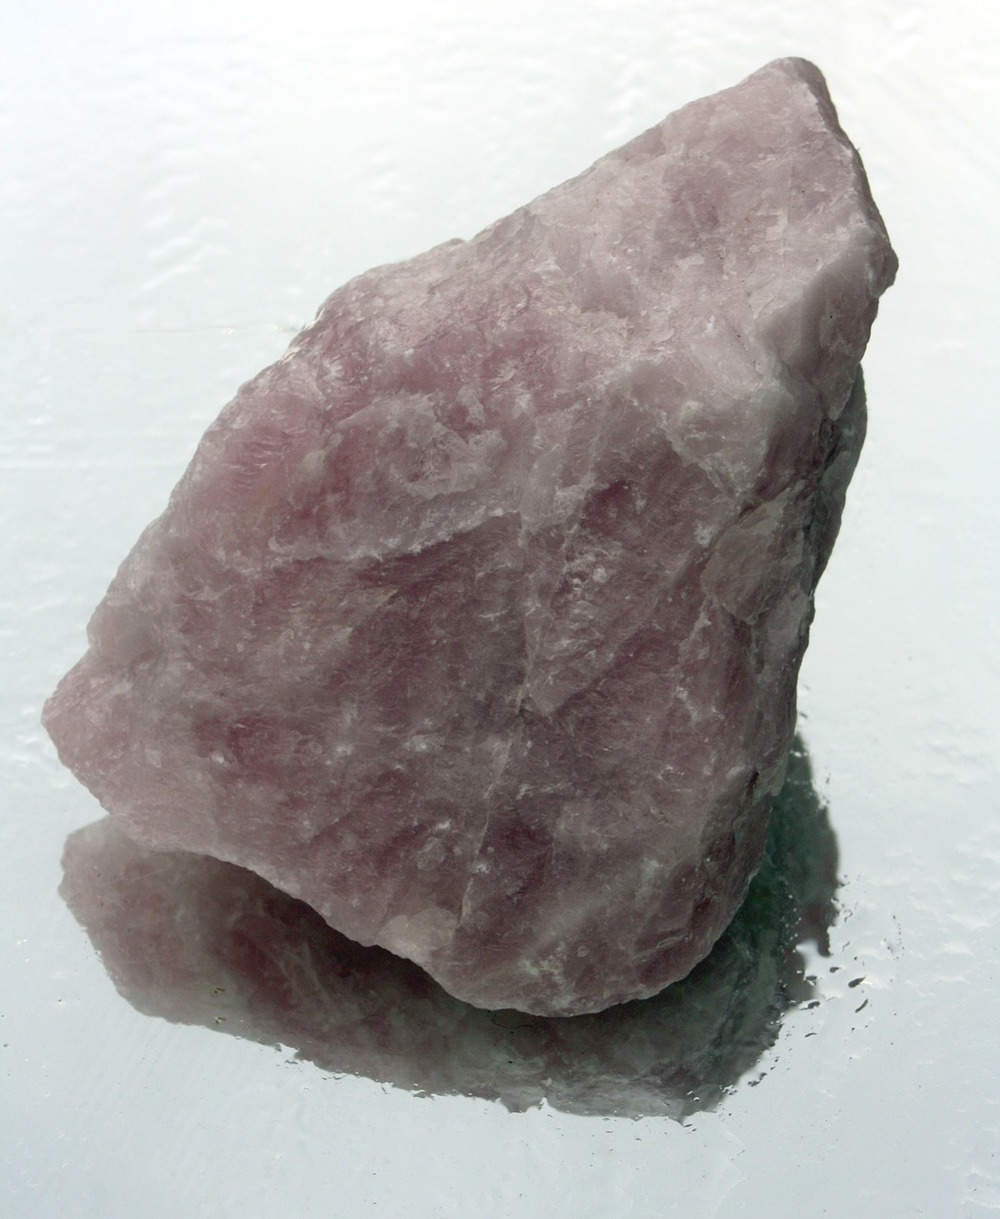 Rose Quartz Meaning And What Are The Healing Benefits